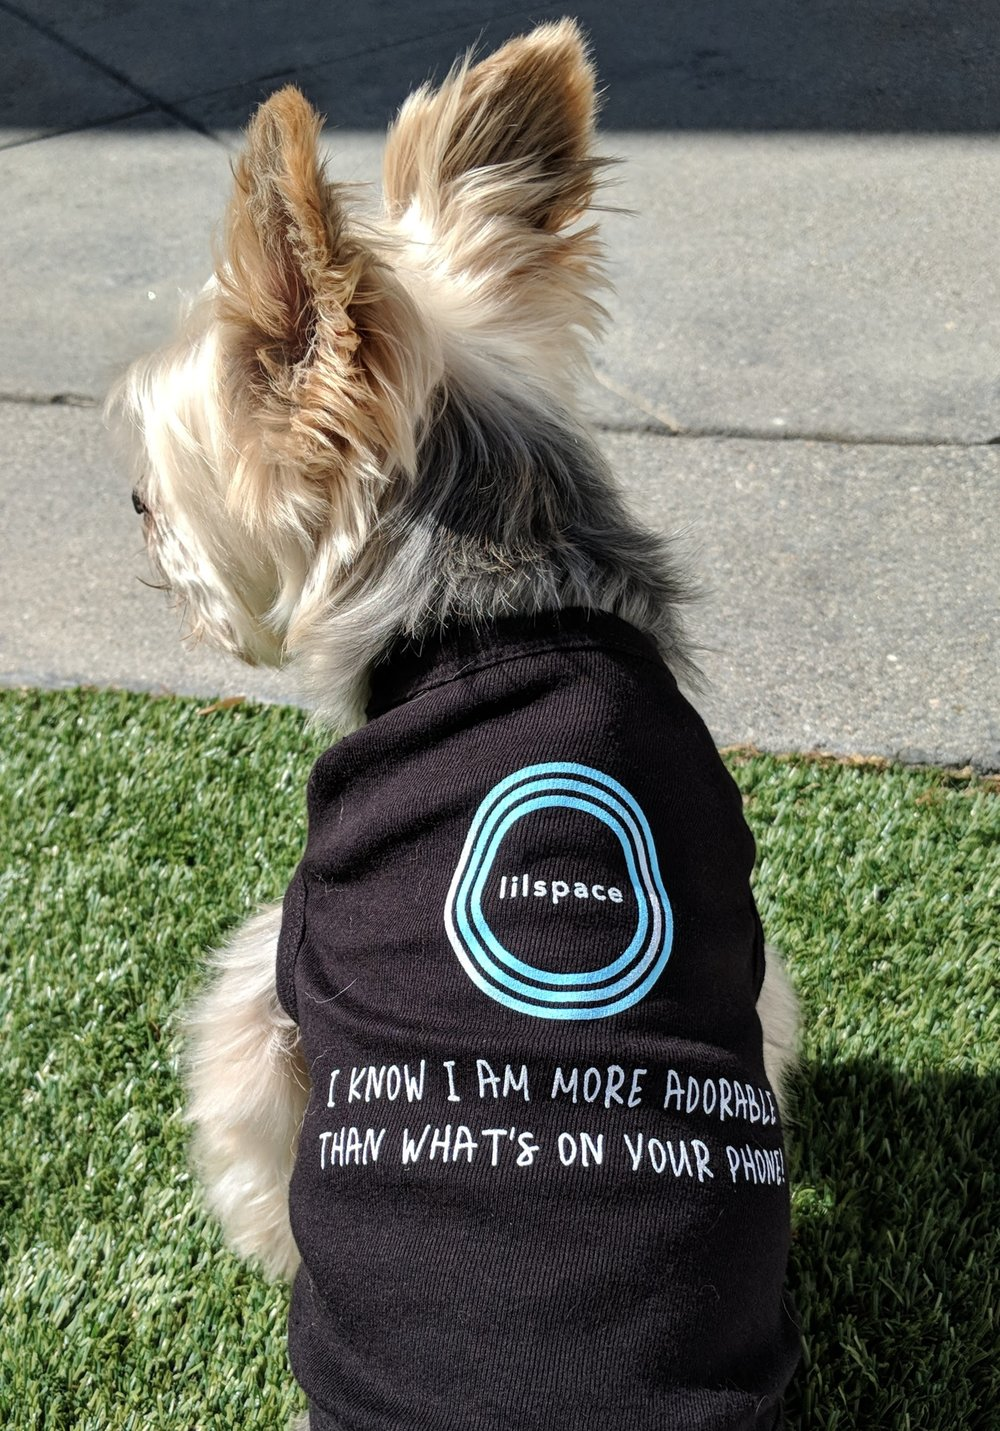 ONGOING: DOG TIME - Your four-legged best friend loves your full attention. UNPLUG FOR 1 HOUR AND GET A FREE LILSPACE DOG SHIRT THAT SAYS